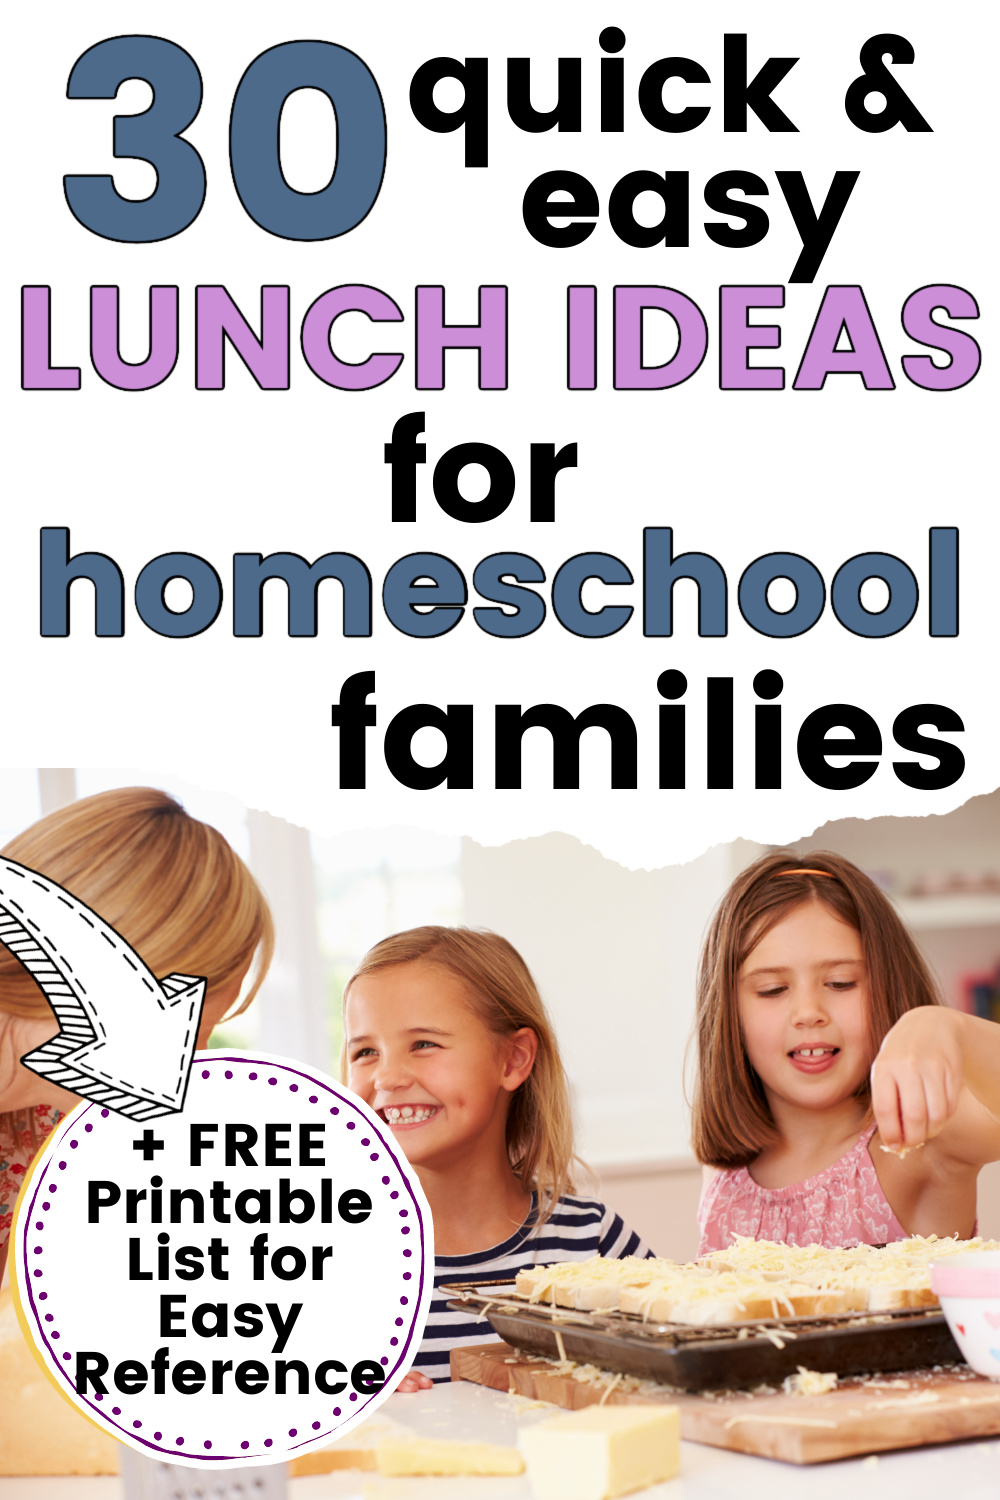 homeschool kids making quick and easy lunch